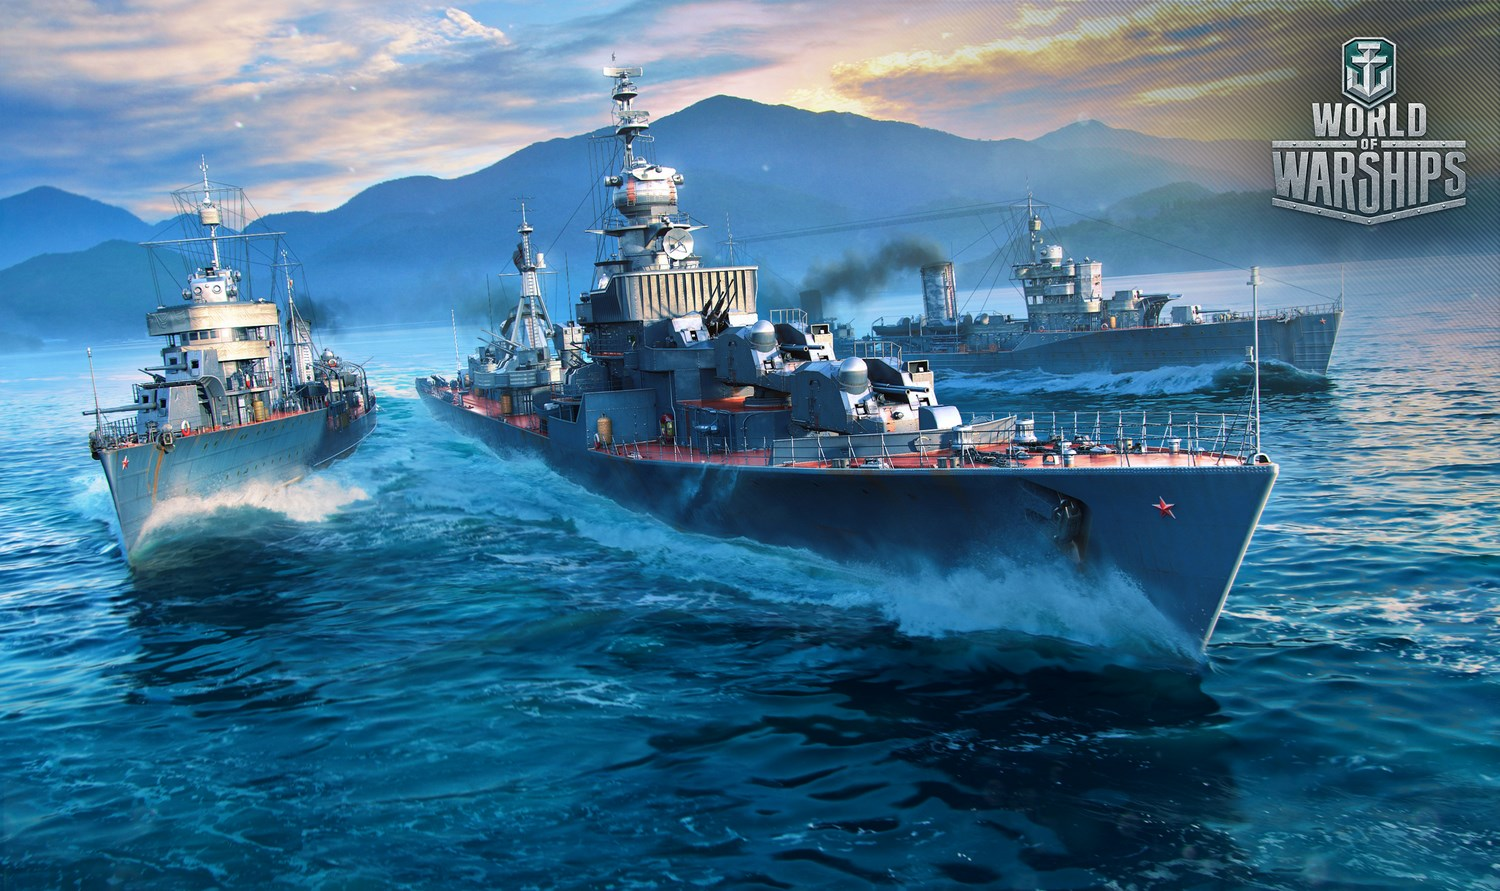 World of Warships Best Destroyer Lines, Ranked Weakest to